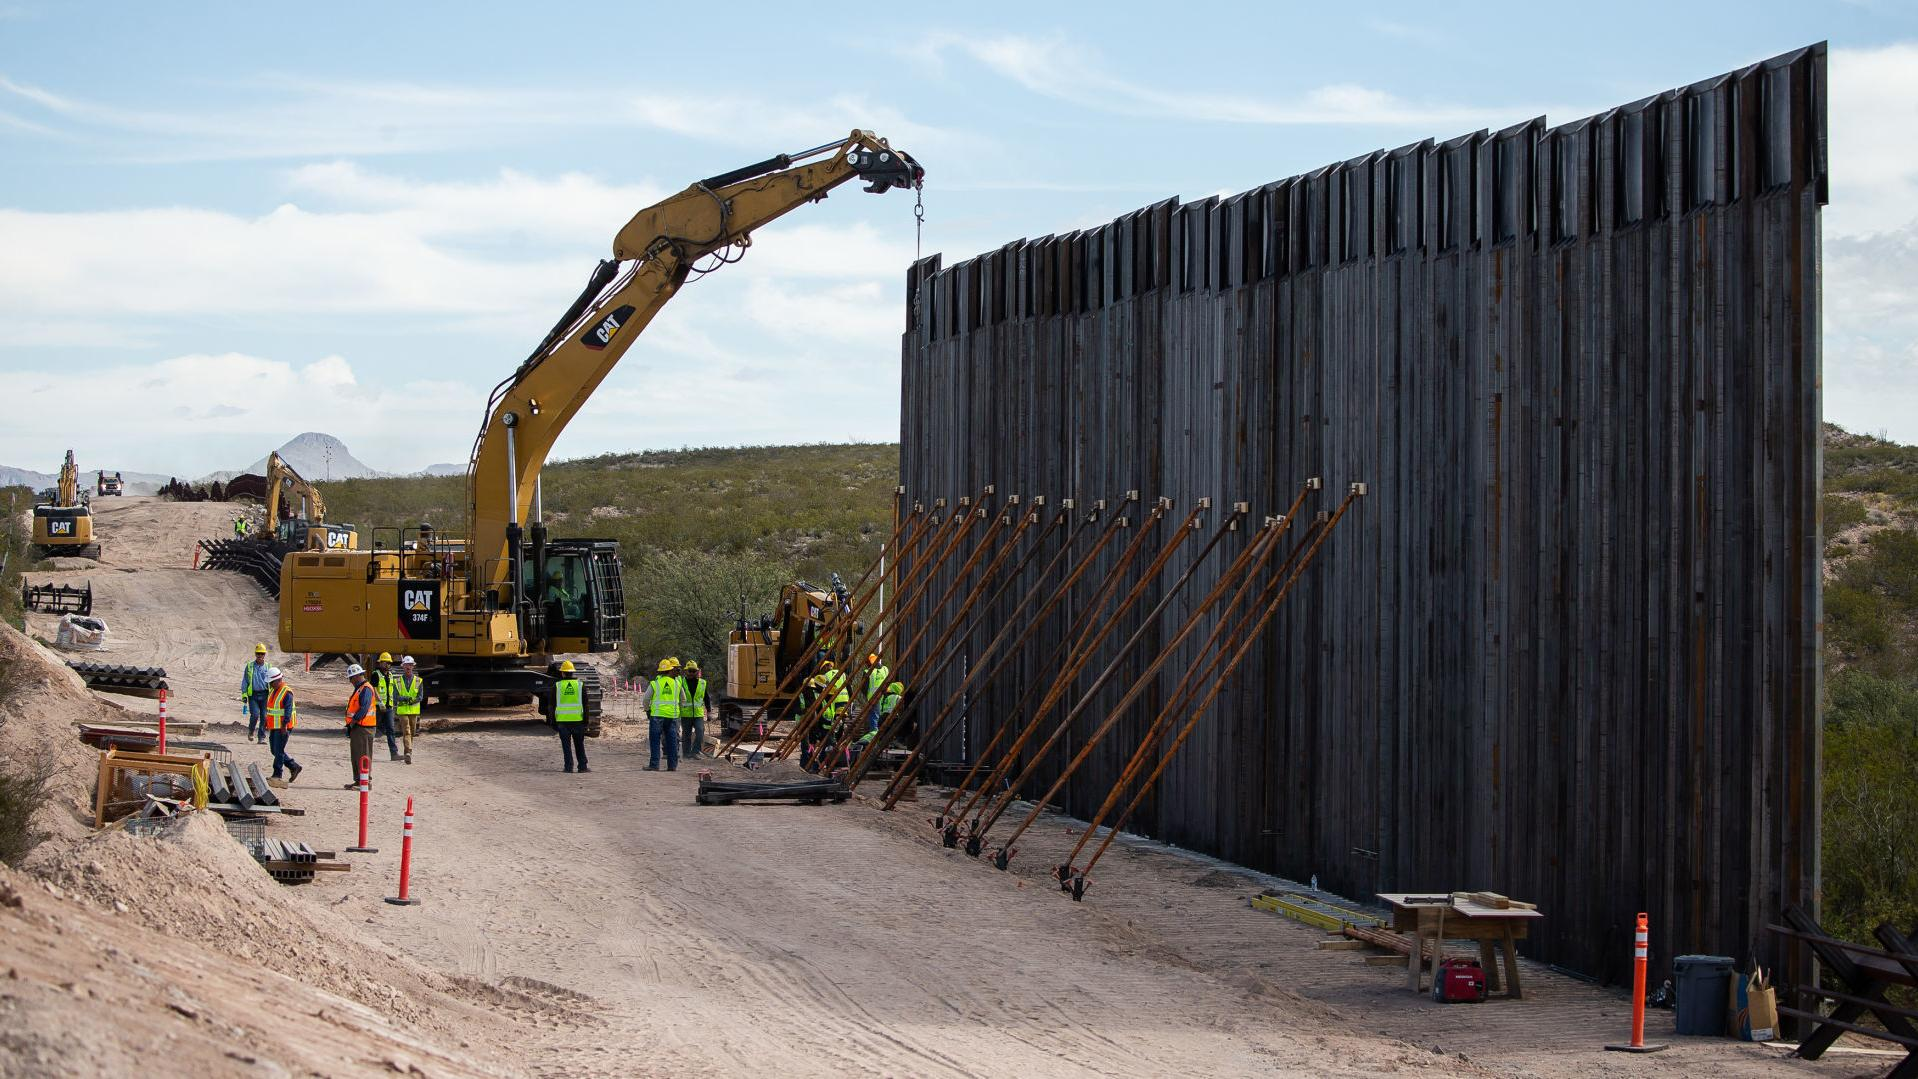 CBP considers outsourcing border wall construction to 'private entities'  near Tucson | Local news | tucson.com